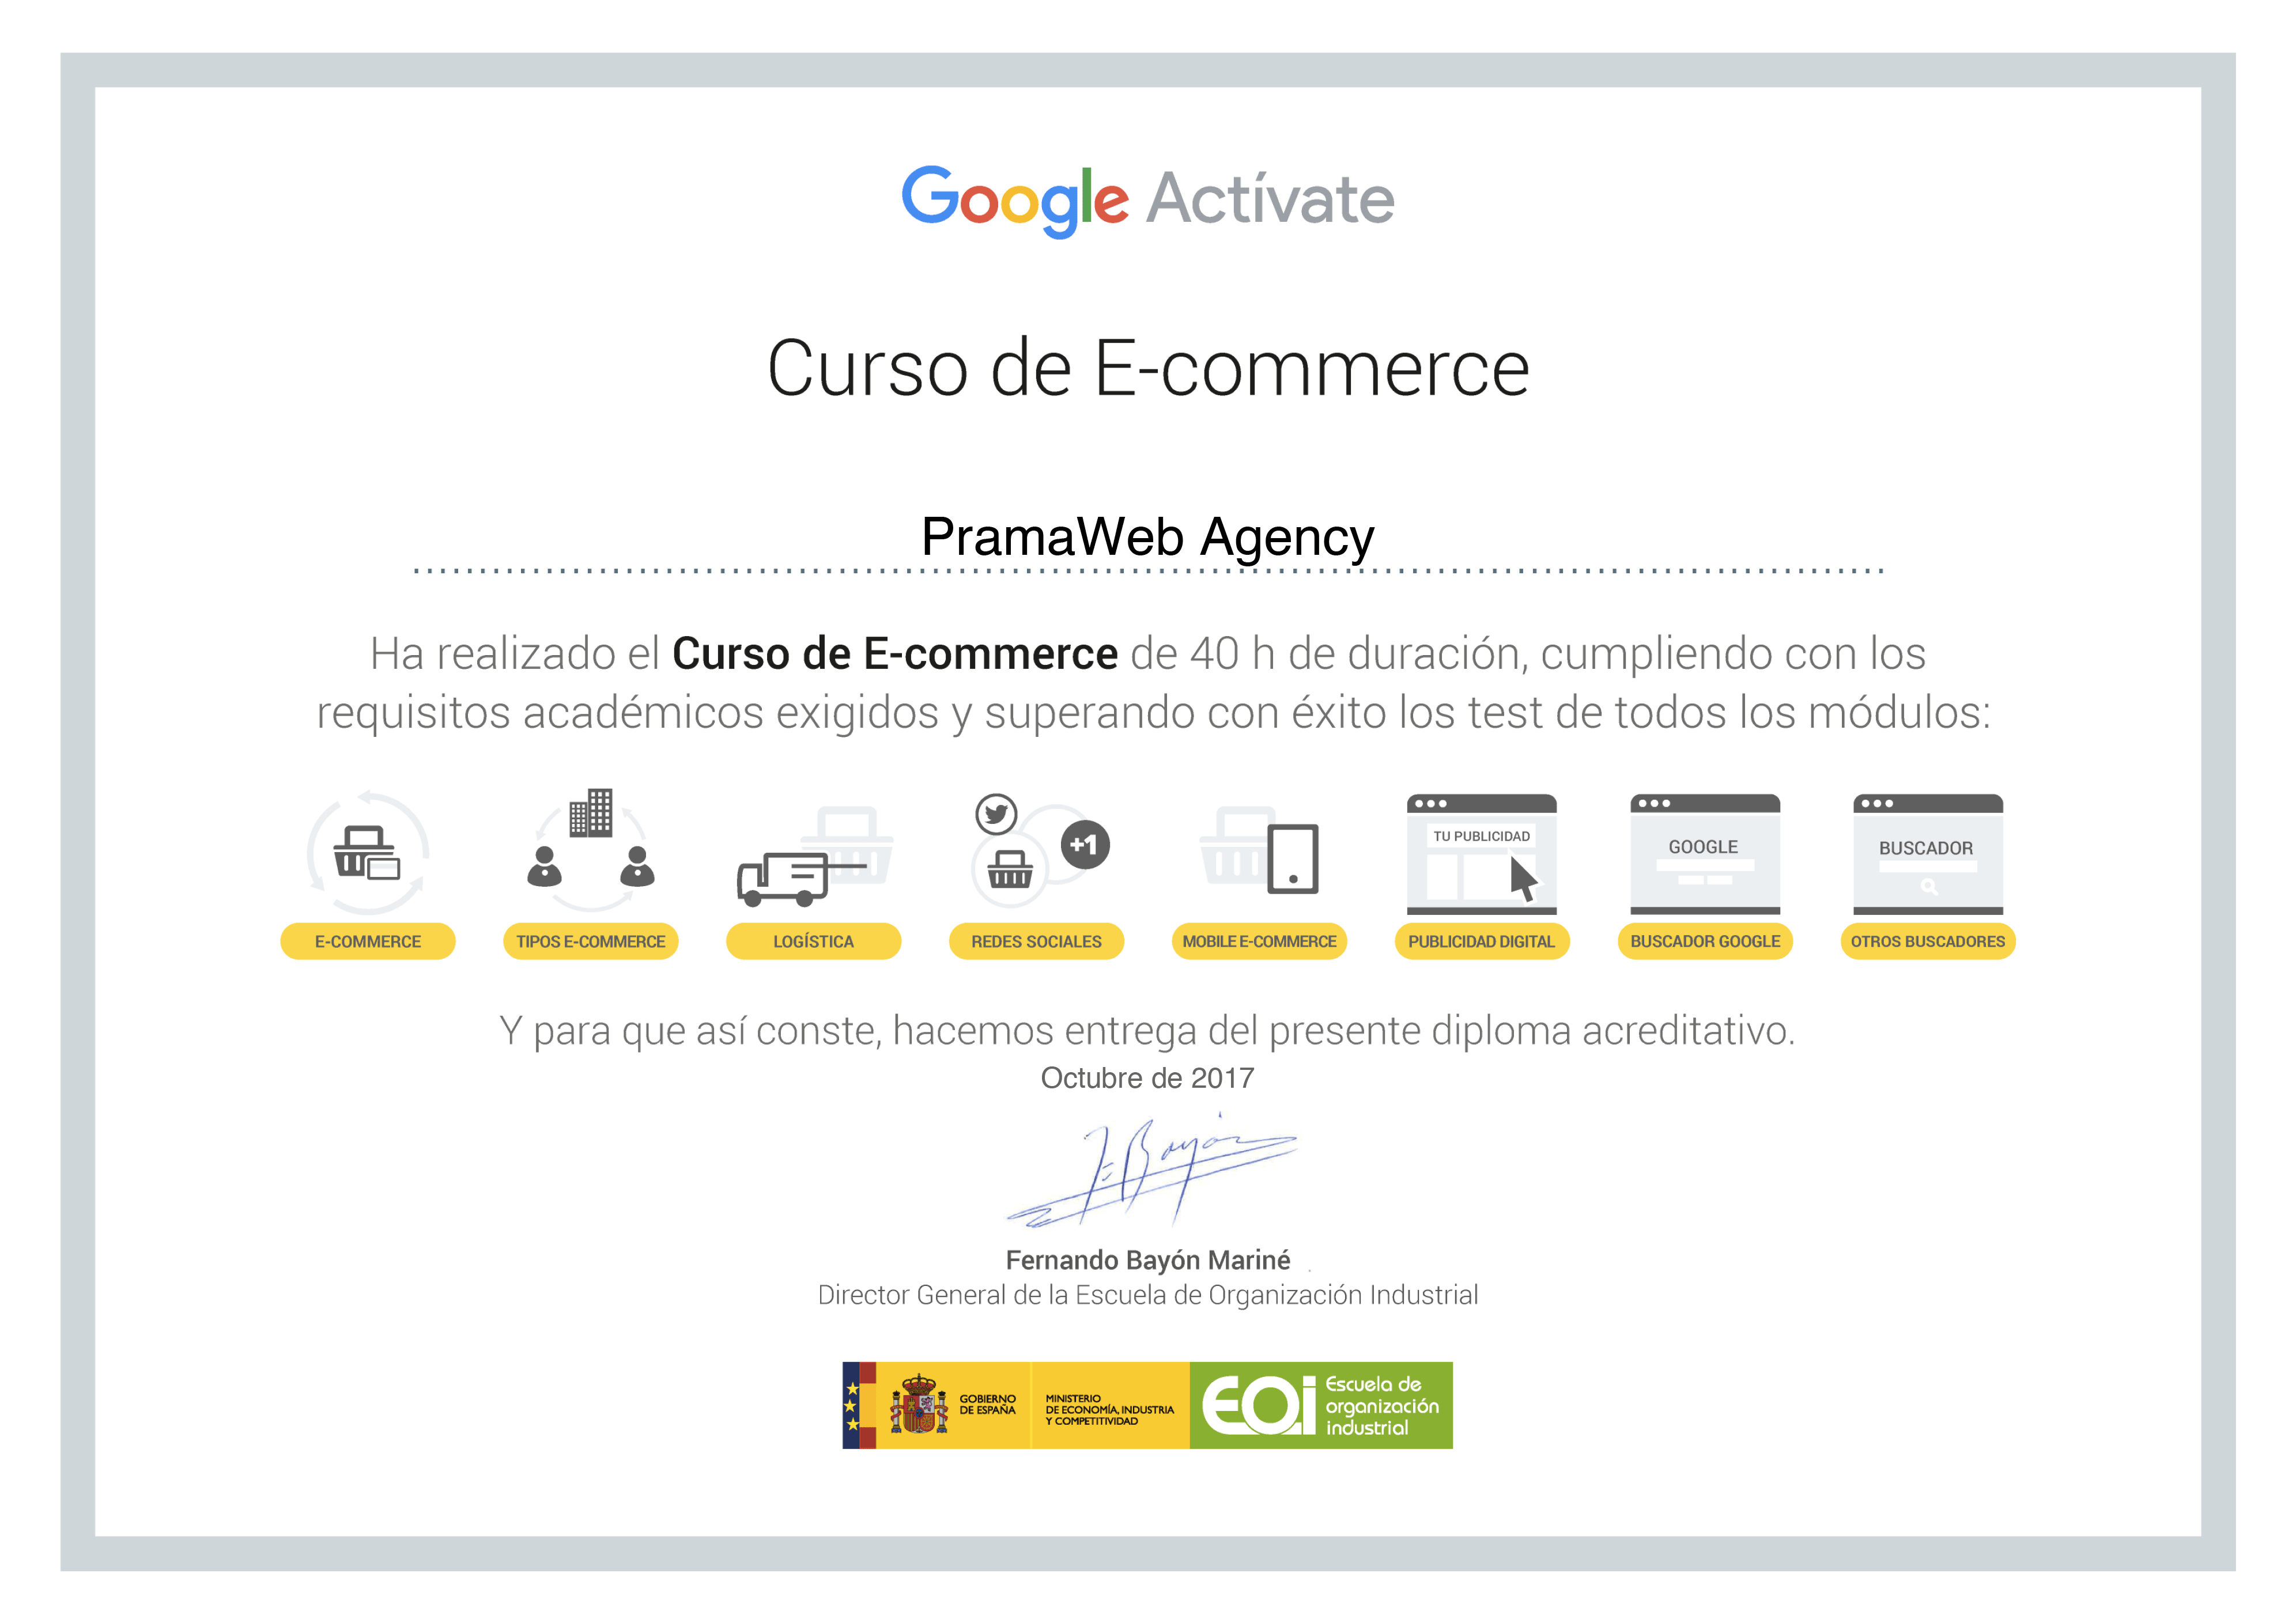 2) Curso E-Commerce